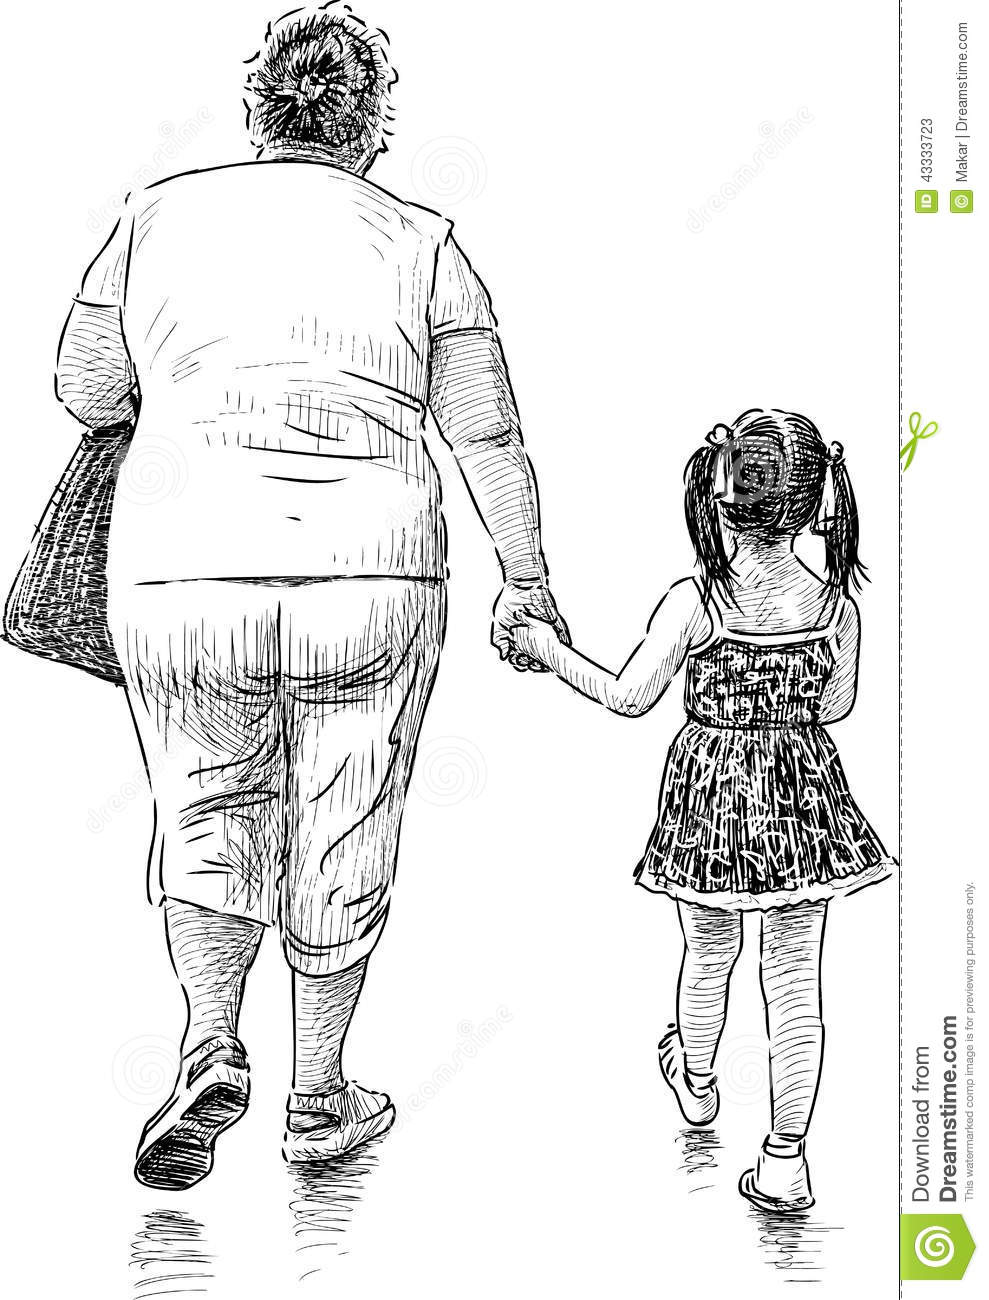 Desenho likewise Stock Illustration Grandmother Granddaughter Vector Drawing Walking Woman Her Image43333723 likewise How To Draw An Easy Face also How To Draw Heads Male Portrait 428487055 further Woman Portrait Sideview 11280316. on female portrait drawings